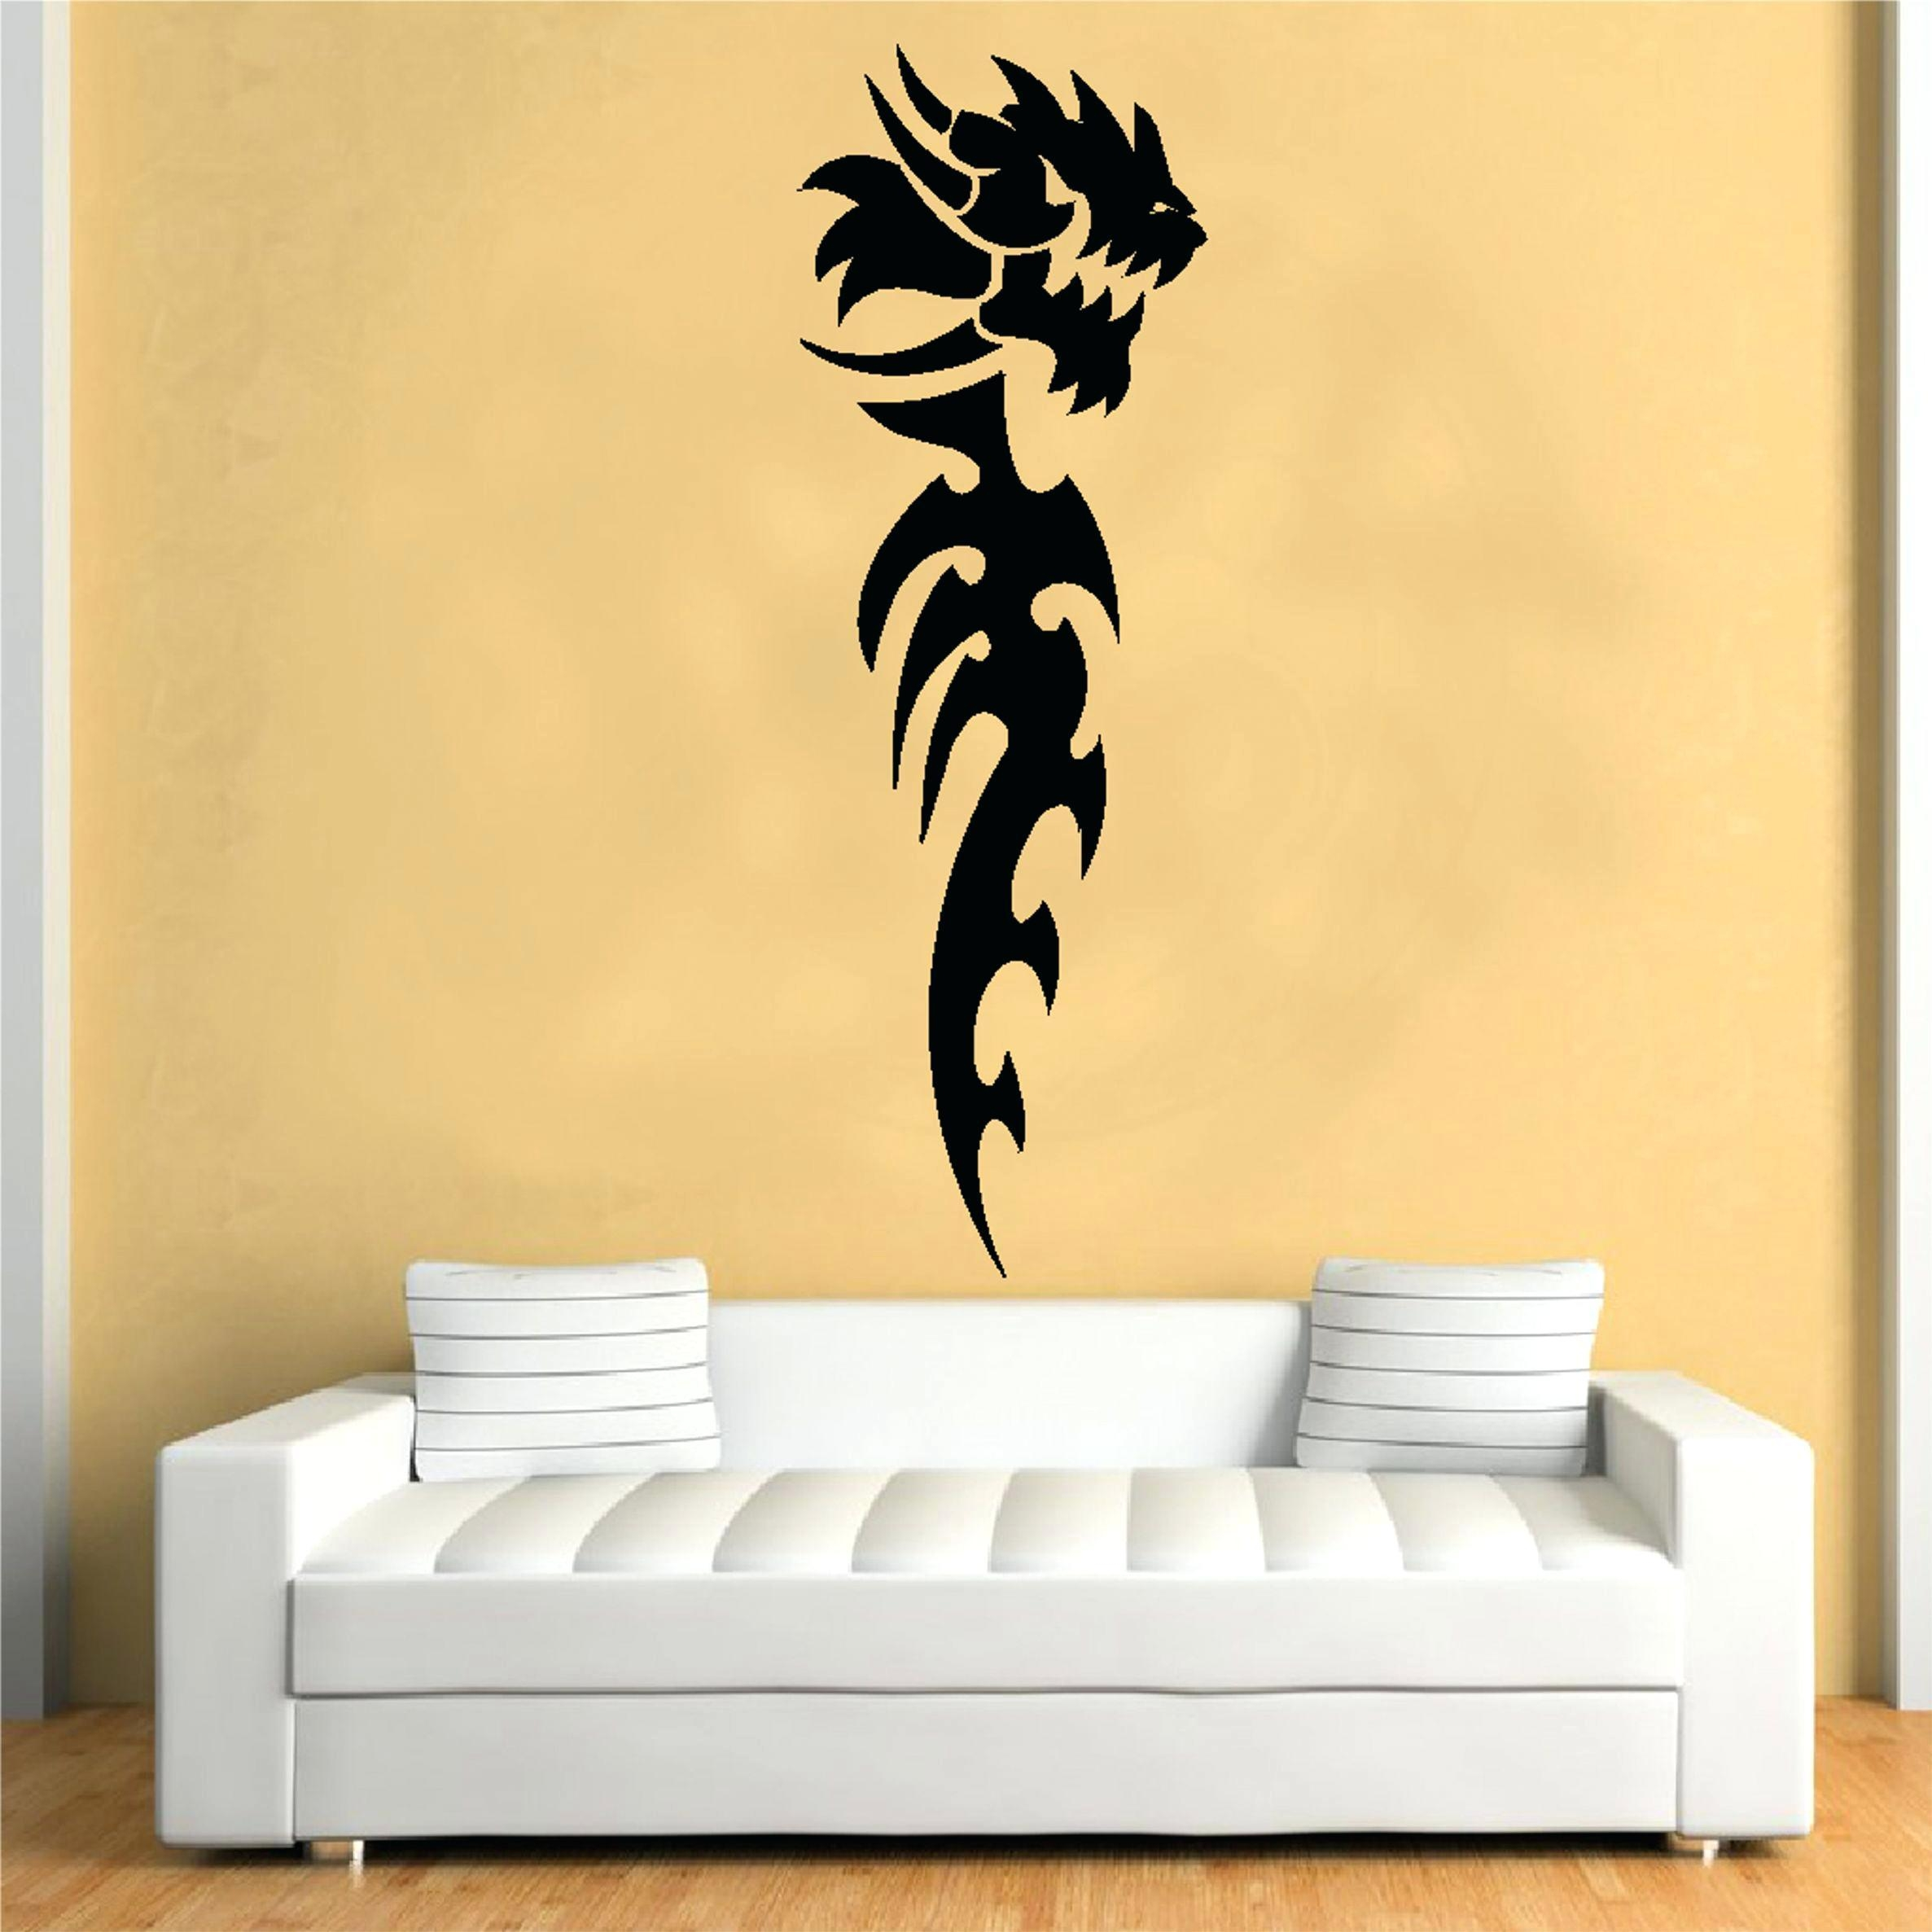 Wall Ideas: Wall Art Stencils. Wall Art Stencils Amazon (Image 20 of 20)